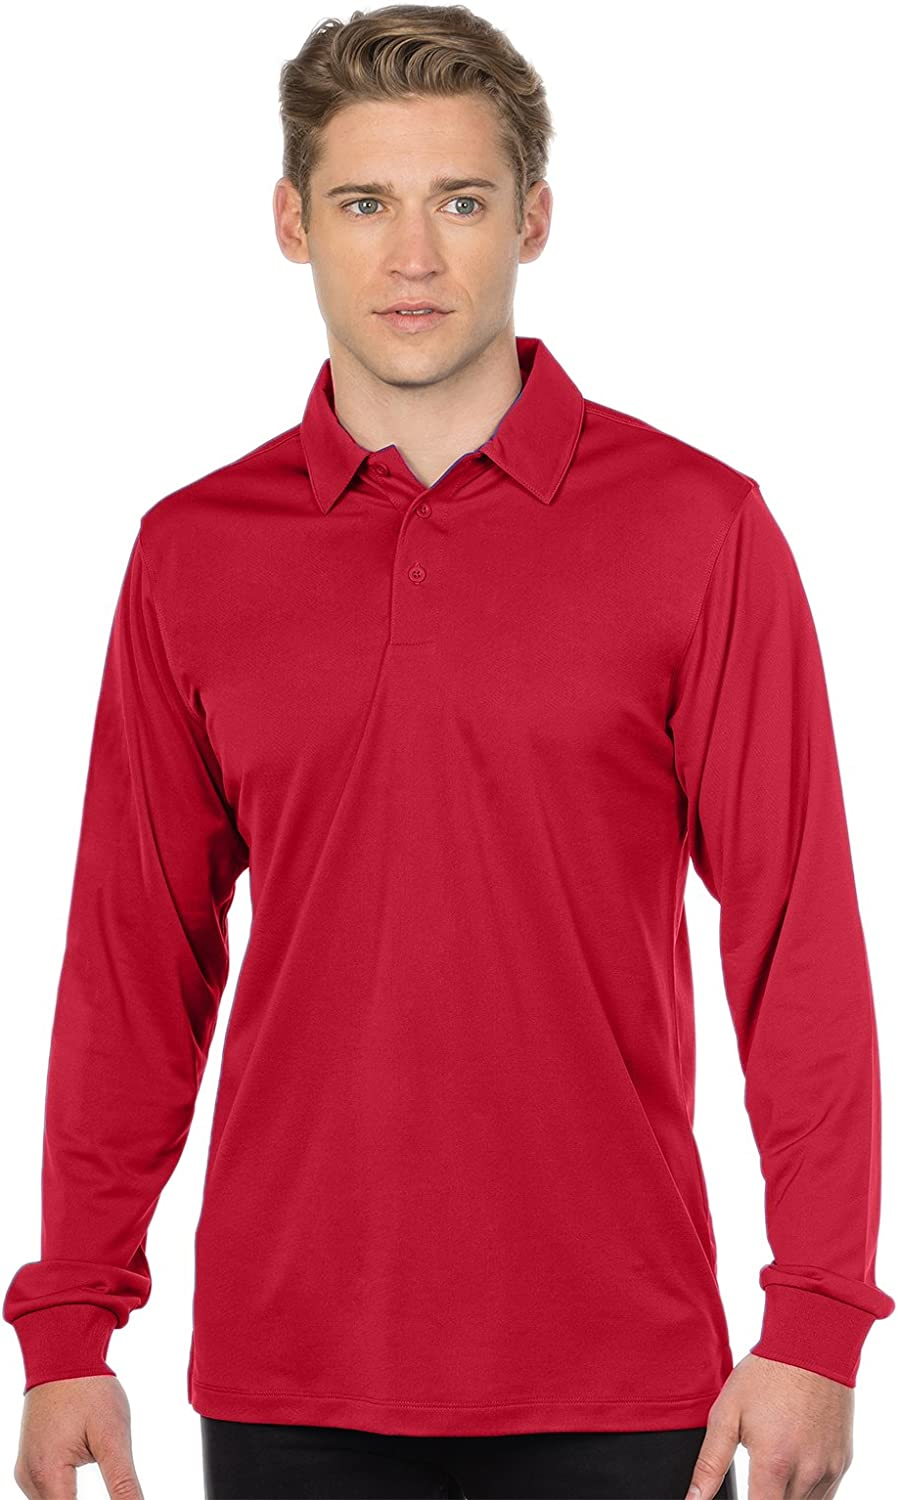 Tri-Mountain Men/'s Polyester Moisture Wick Long Sleeve Knit Polo T-Shirt K107LS